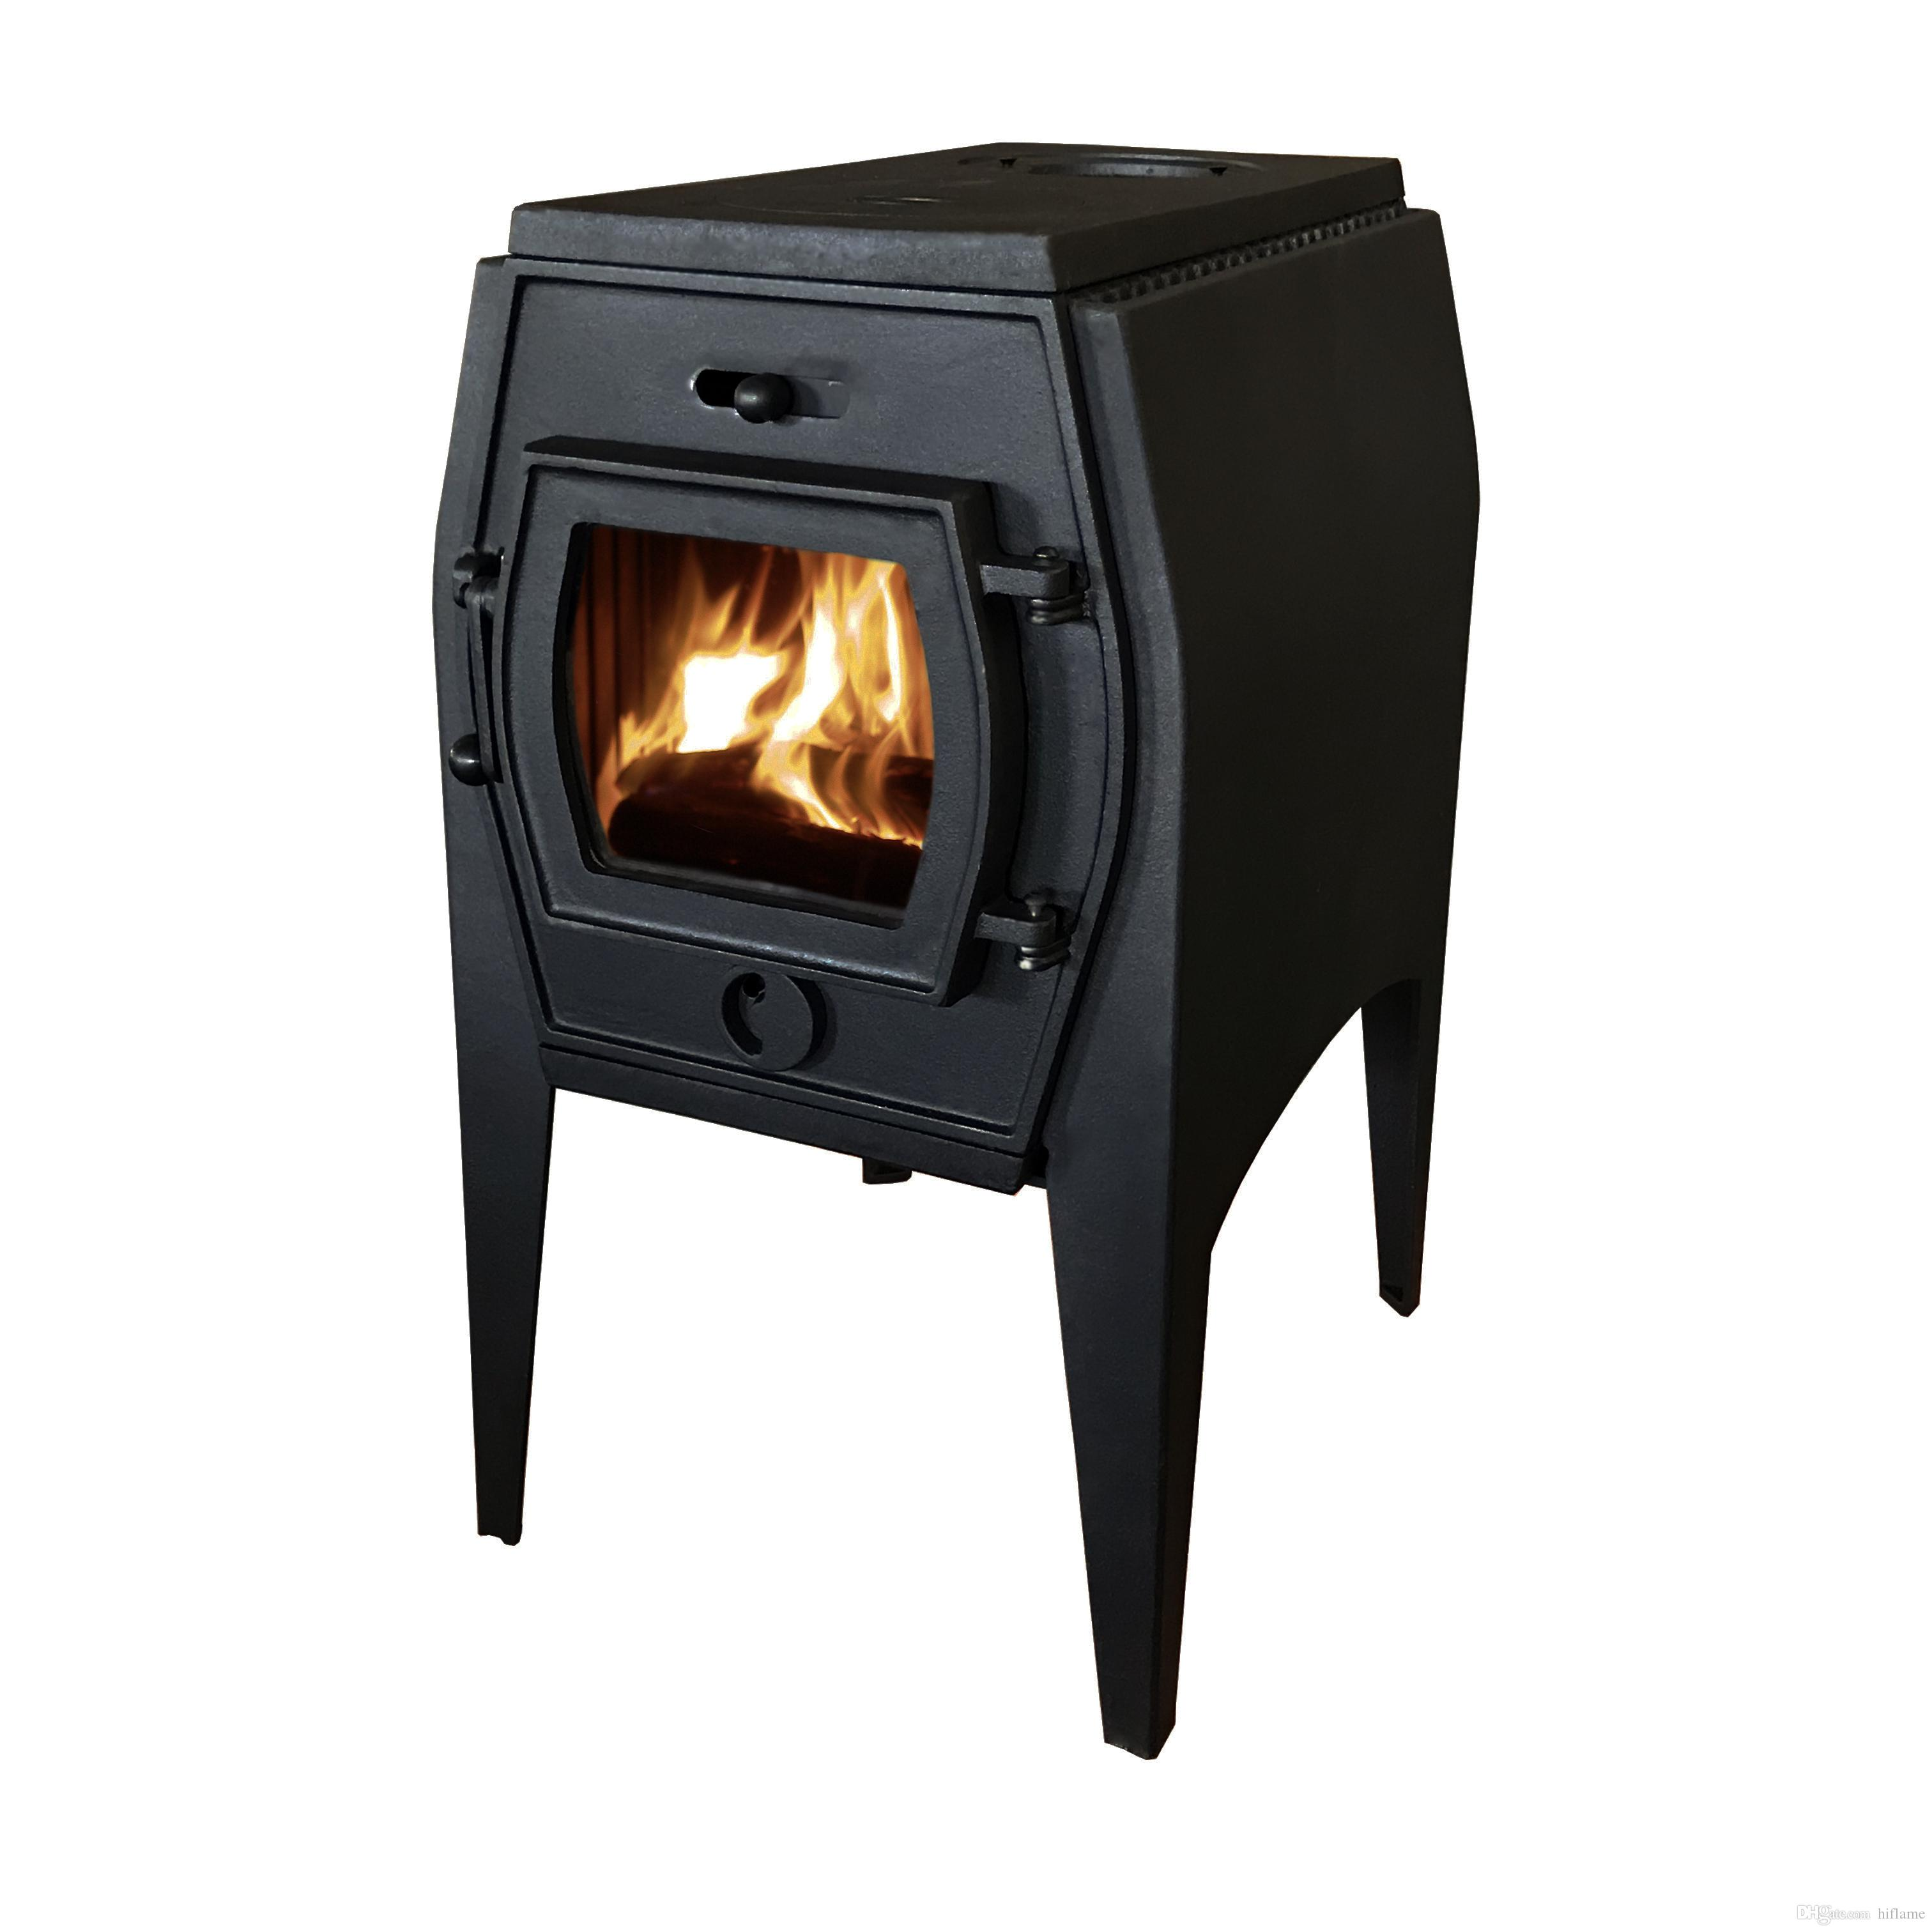 67e8a19a36d9 2019 HiFlame Elena 7KW Cast Iron Wood Heating Stove With Double Heat Shield  HF706A From Hiflame